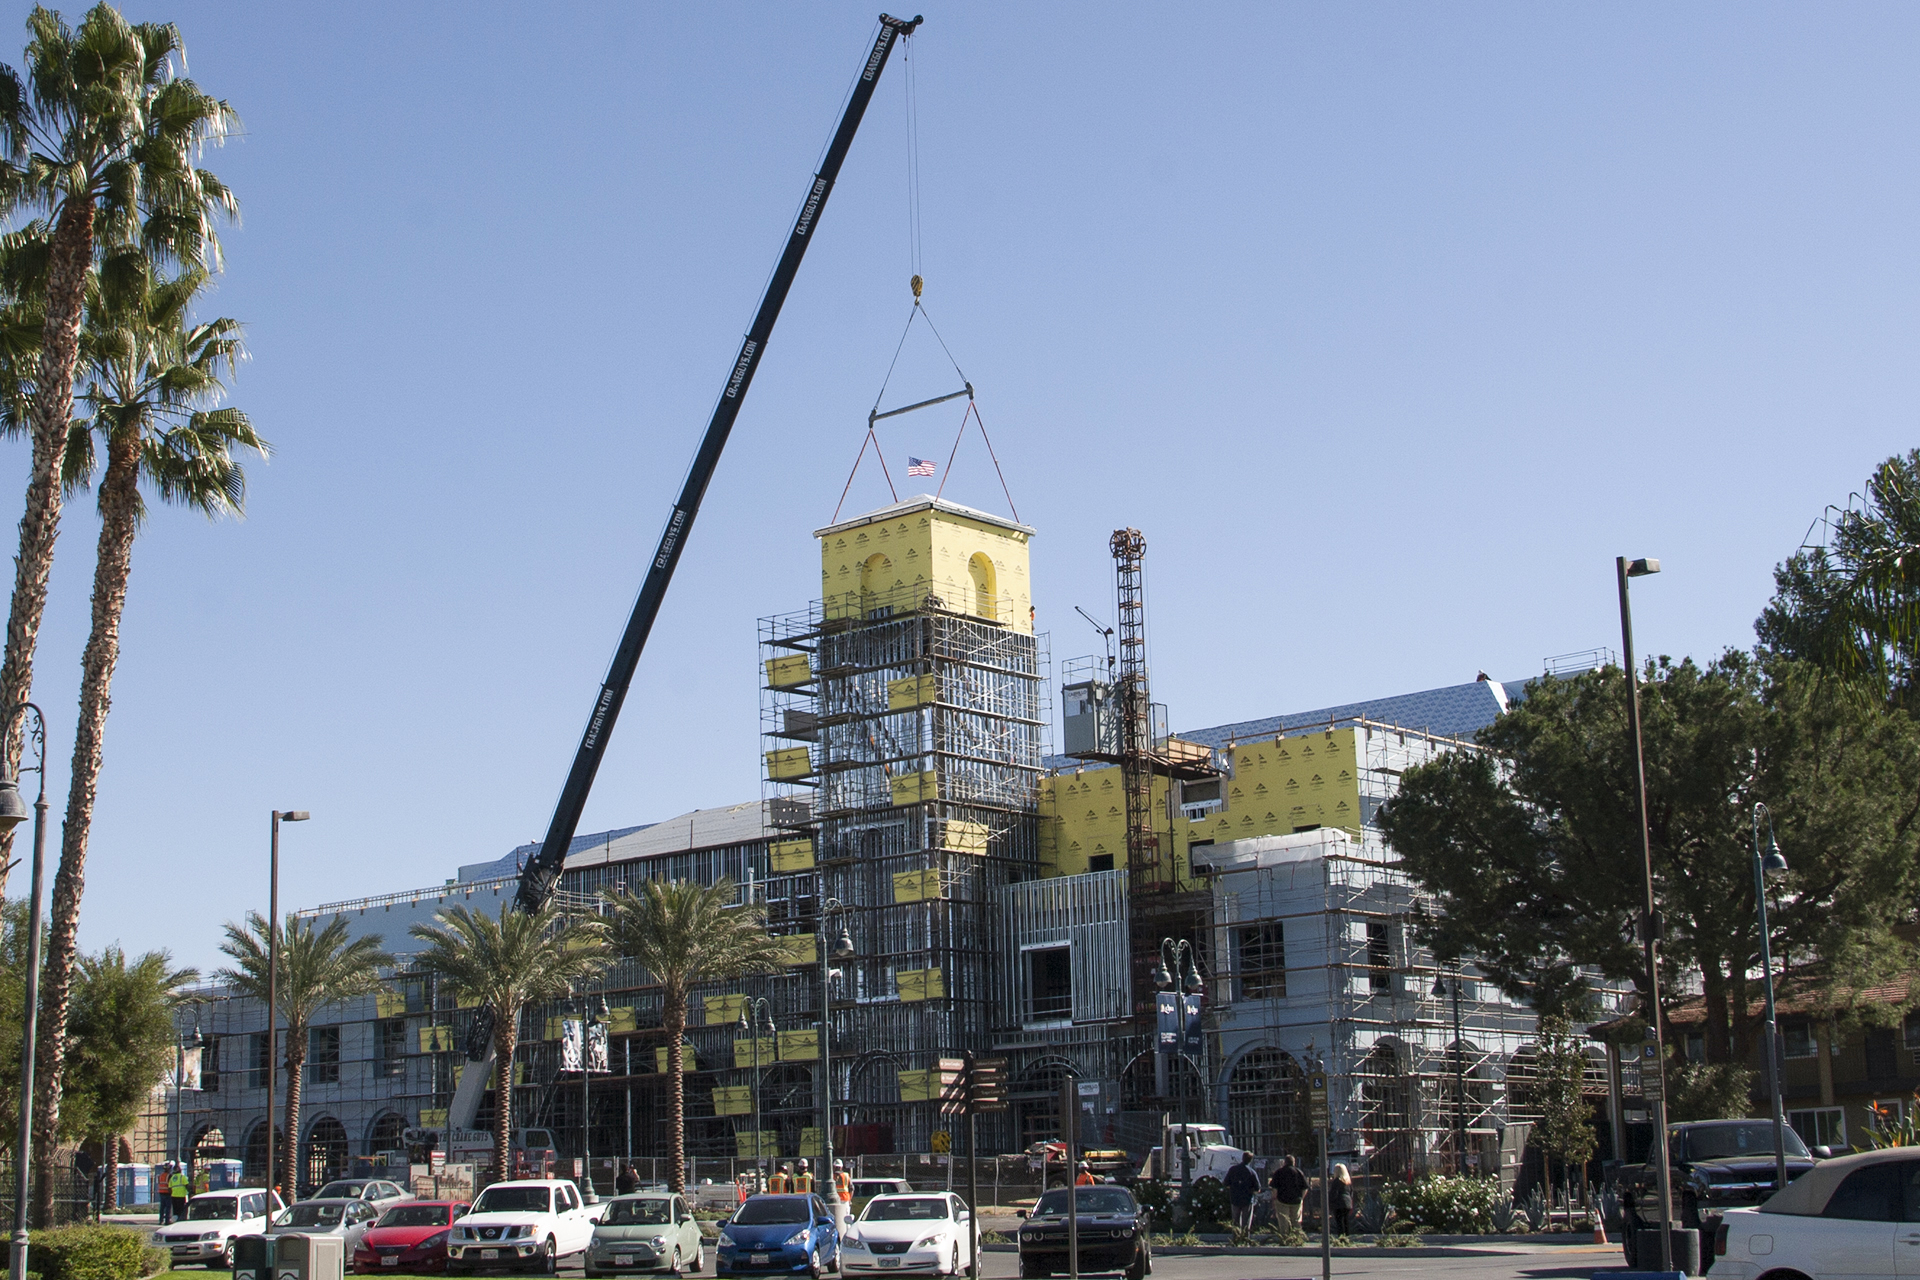 A new iconic symbol at California Baptist University achieved its full 100-foot height as the last portion of the Events Center north facing tower was lifted into place on Nov. 17.